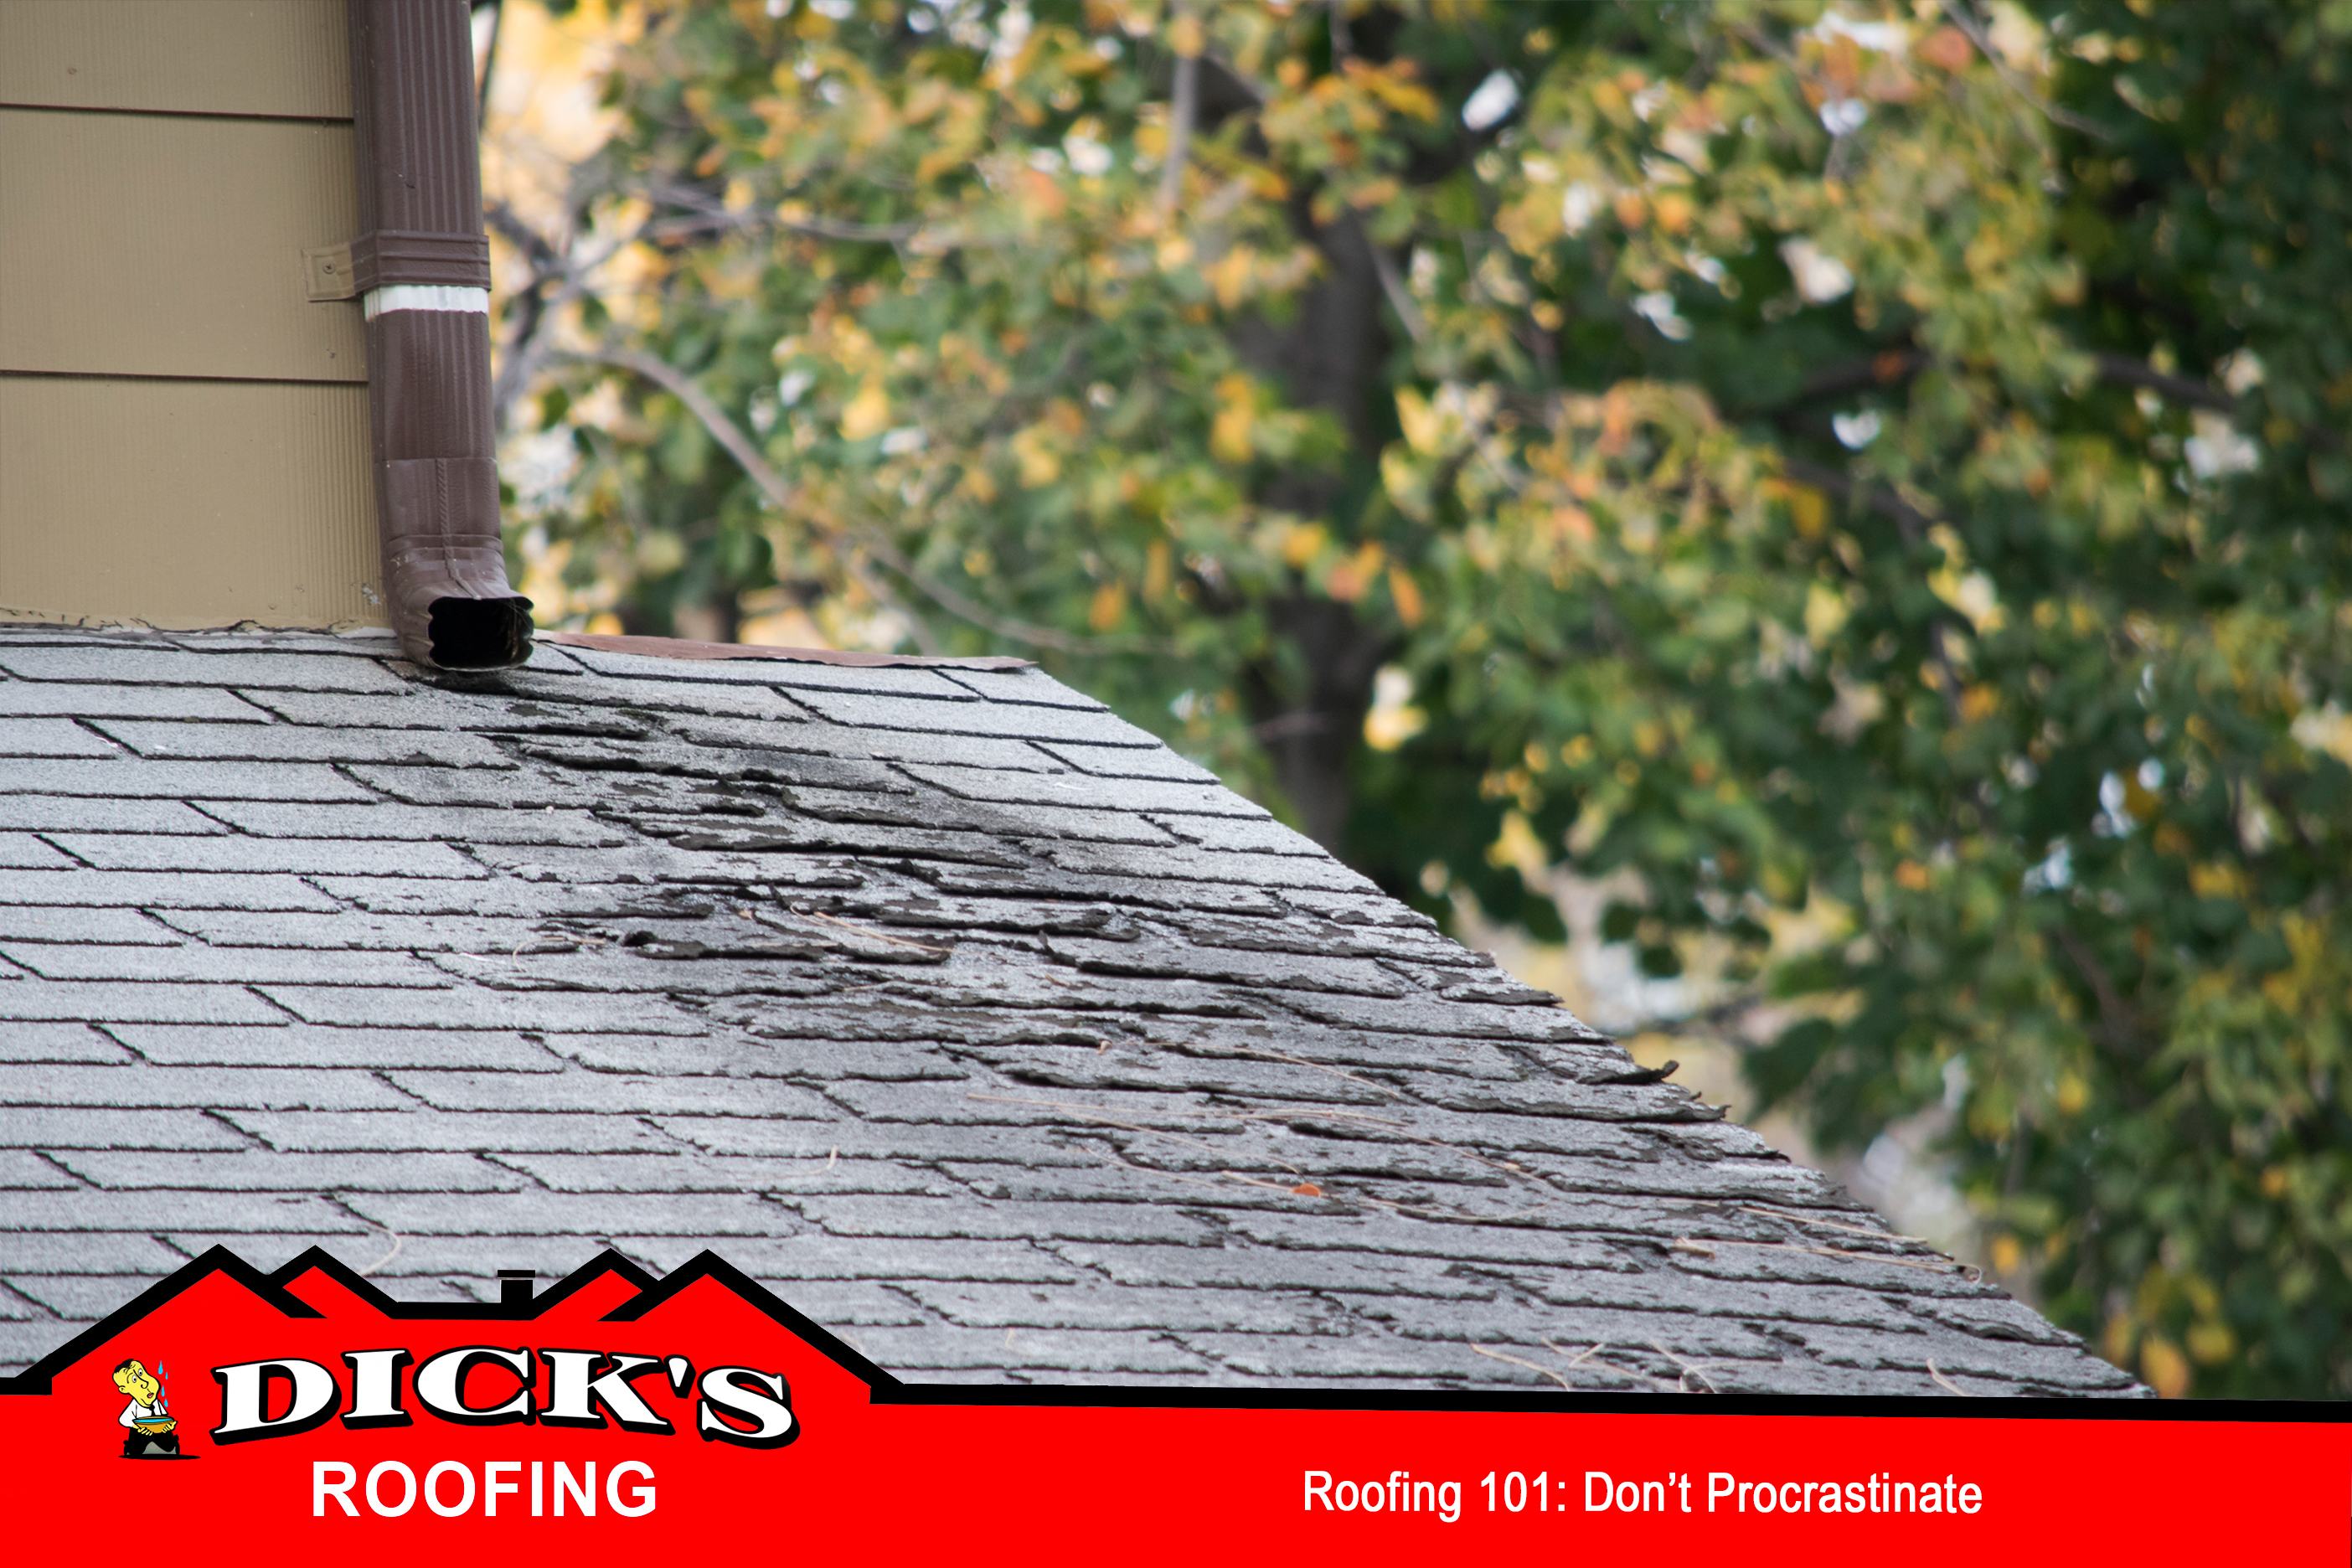 Roofing 101 | Dick's Roofing